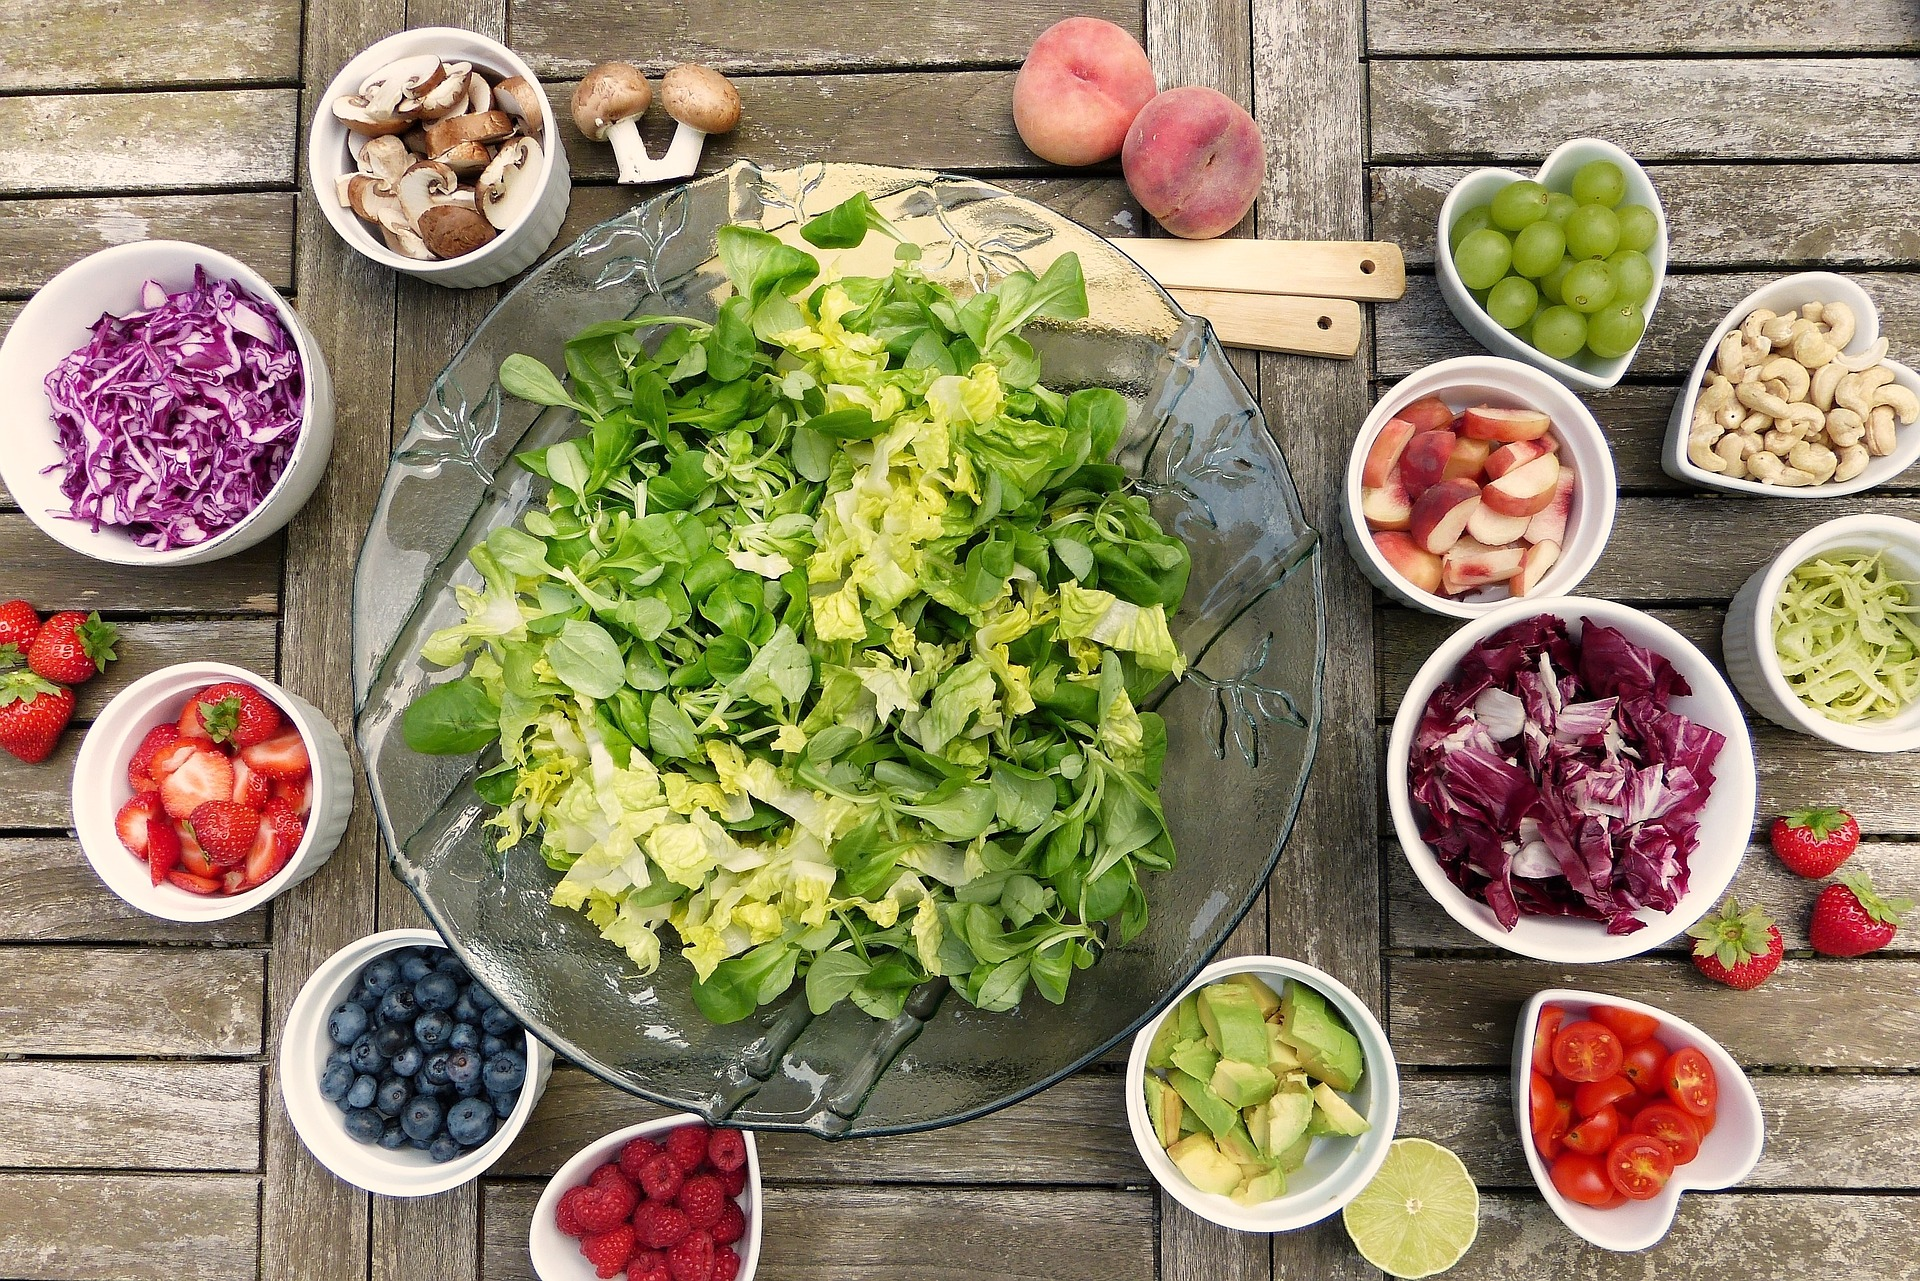 Your Best Key To A Healthy Diet: Variety